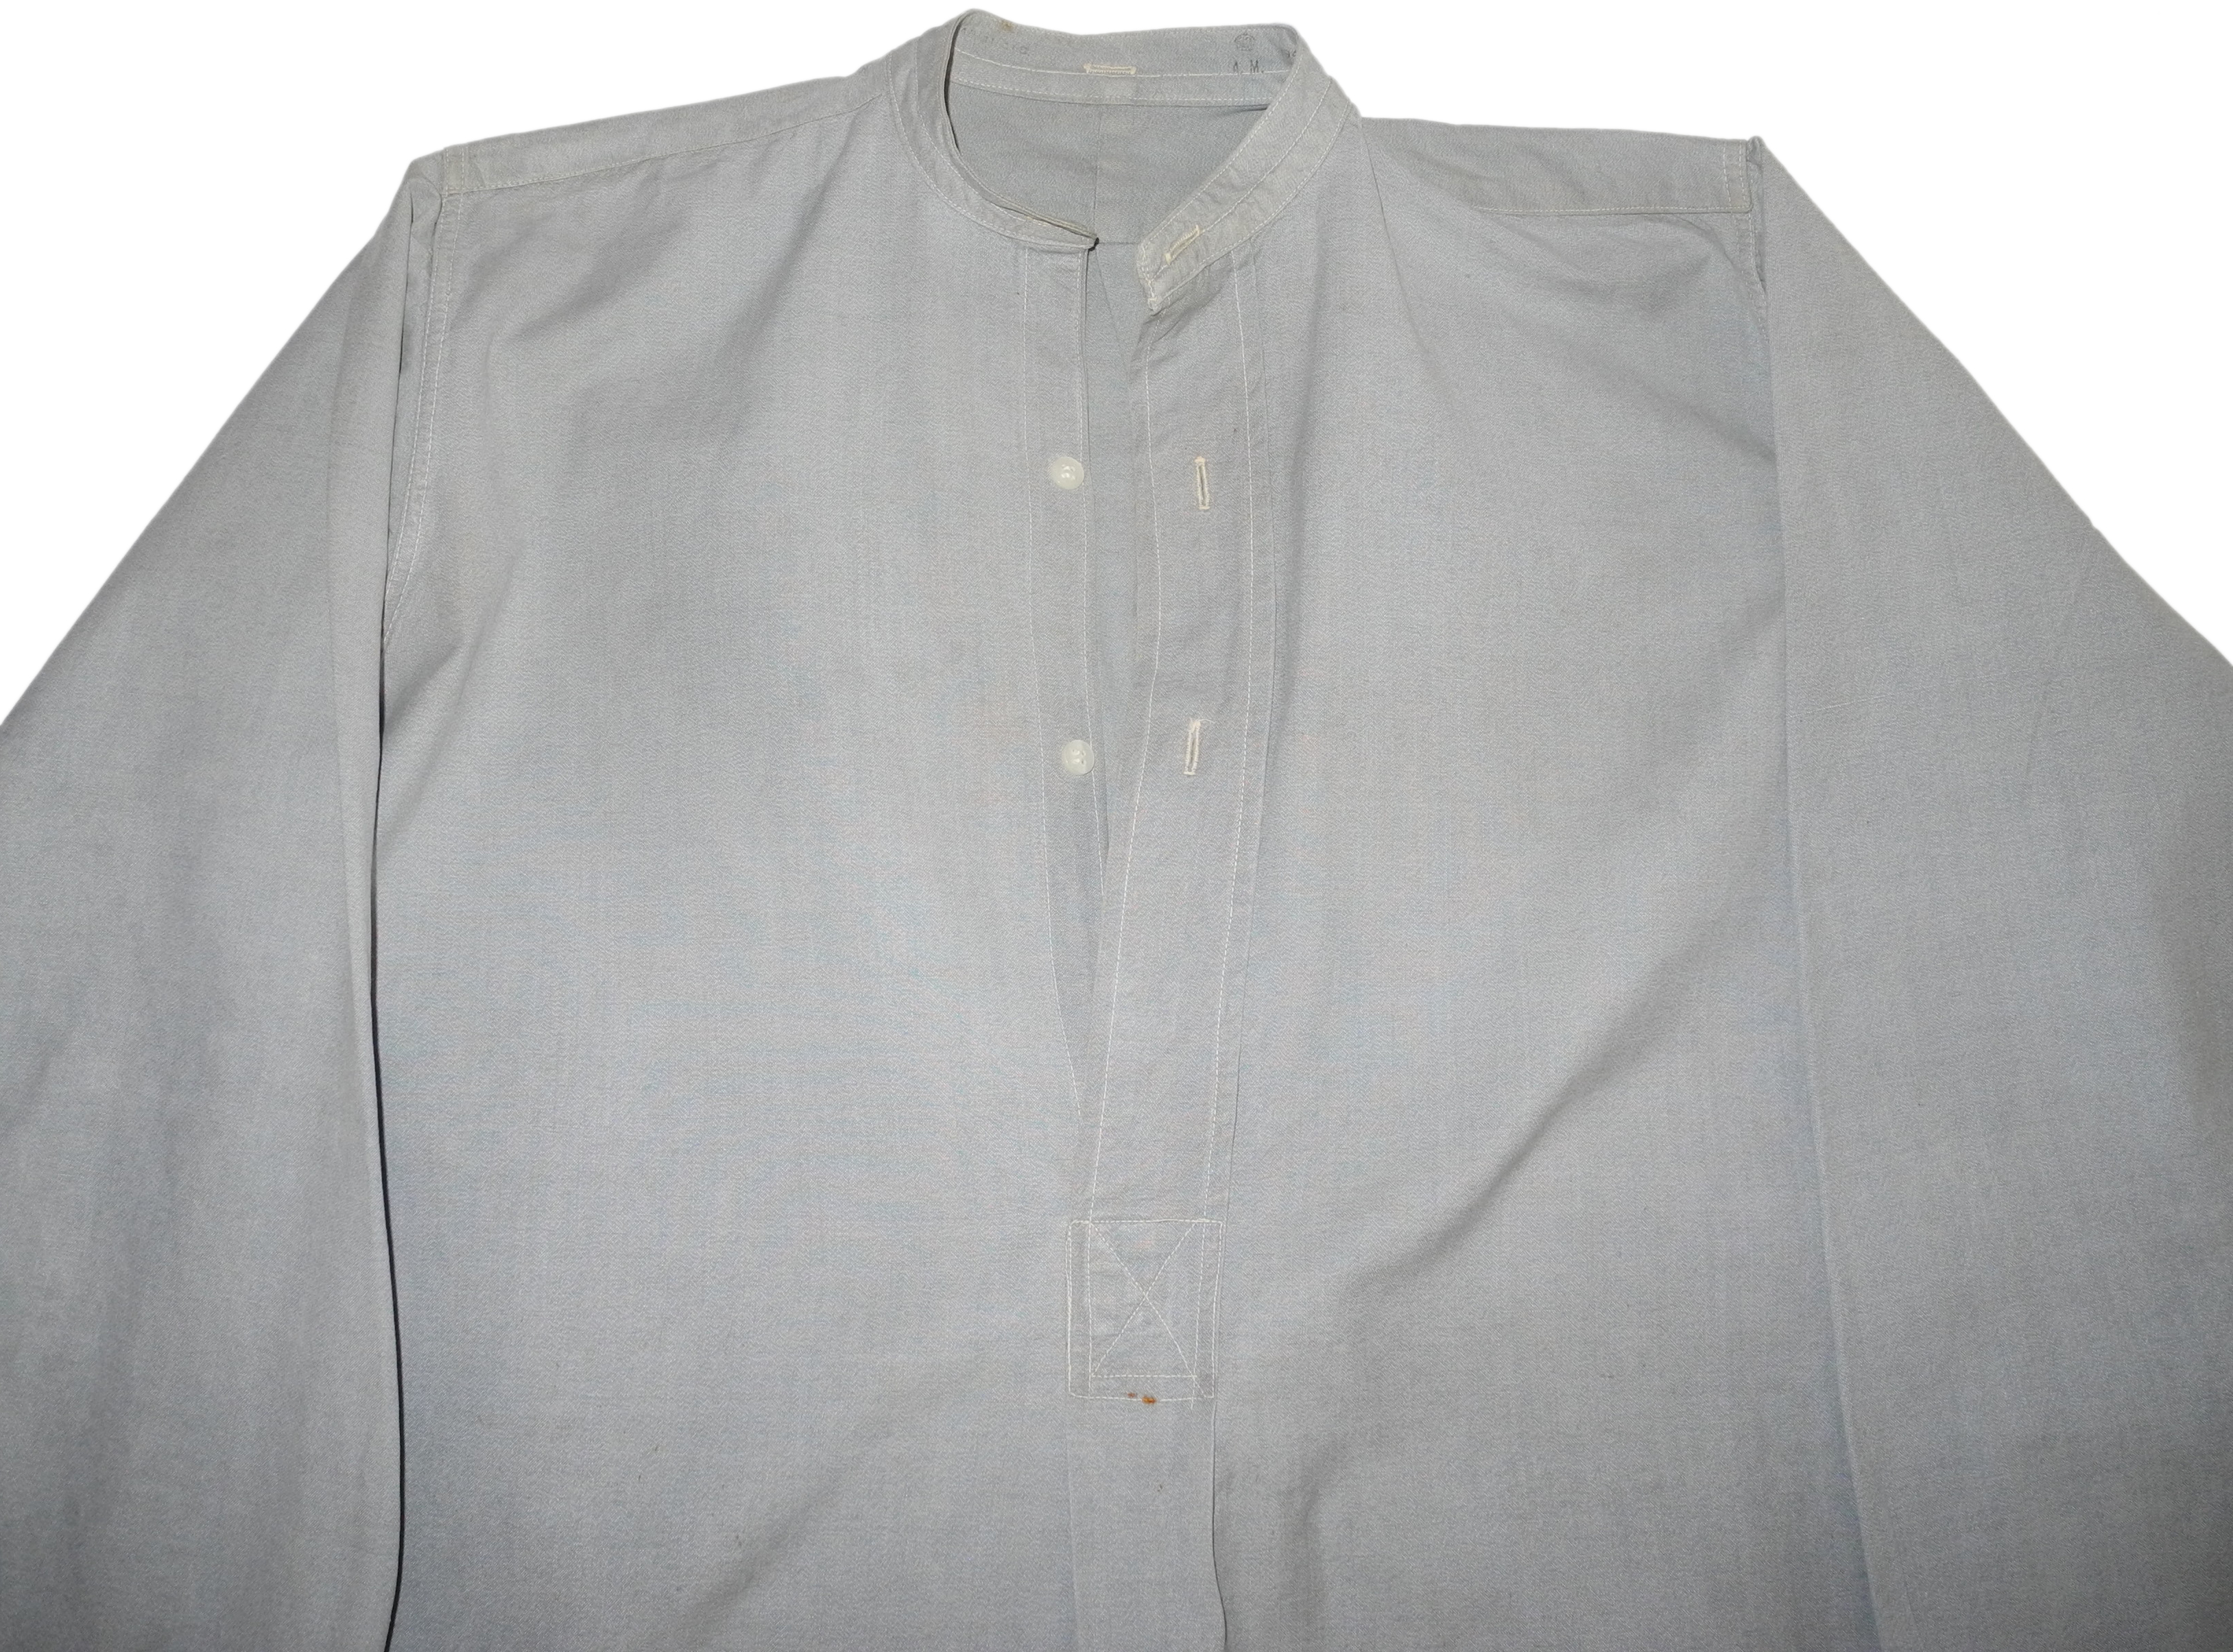 RAF other ranks SD uniform shirt dated 1941